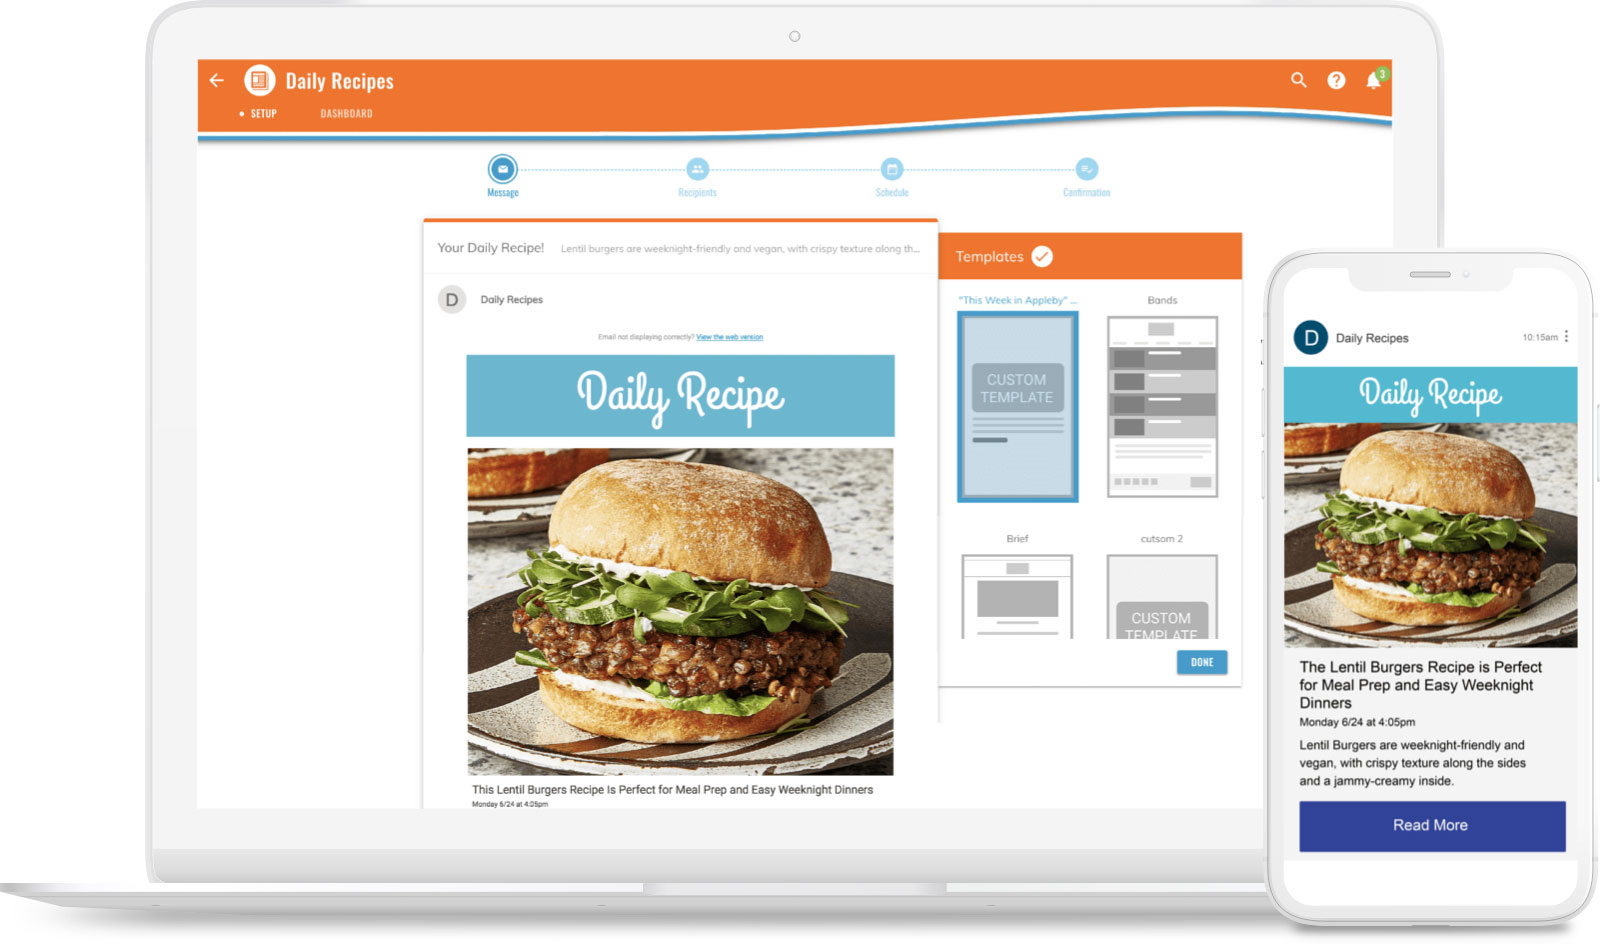 Daily recipe newsletter featuring a lentil burger.